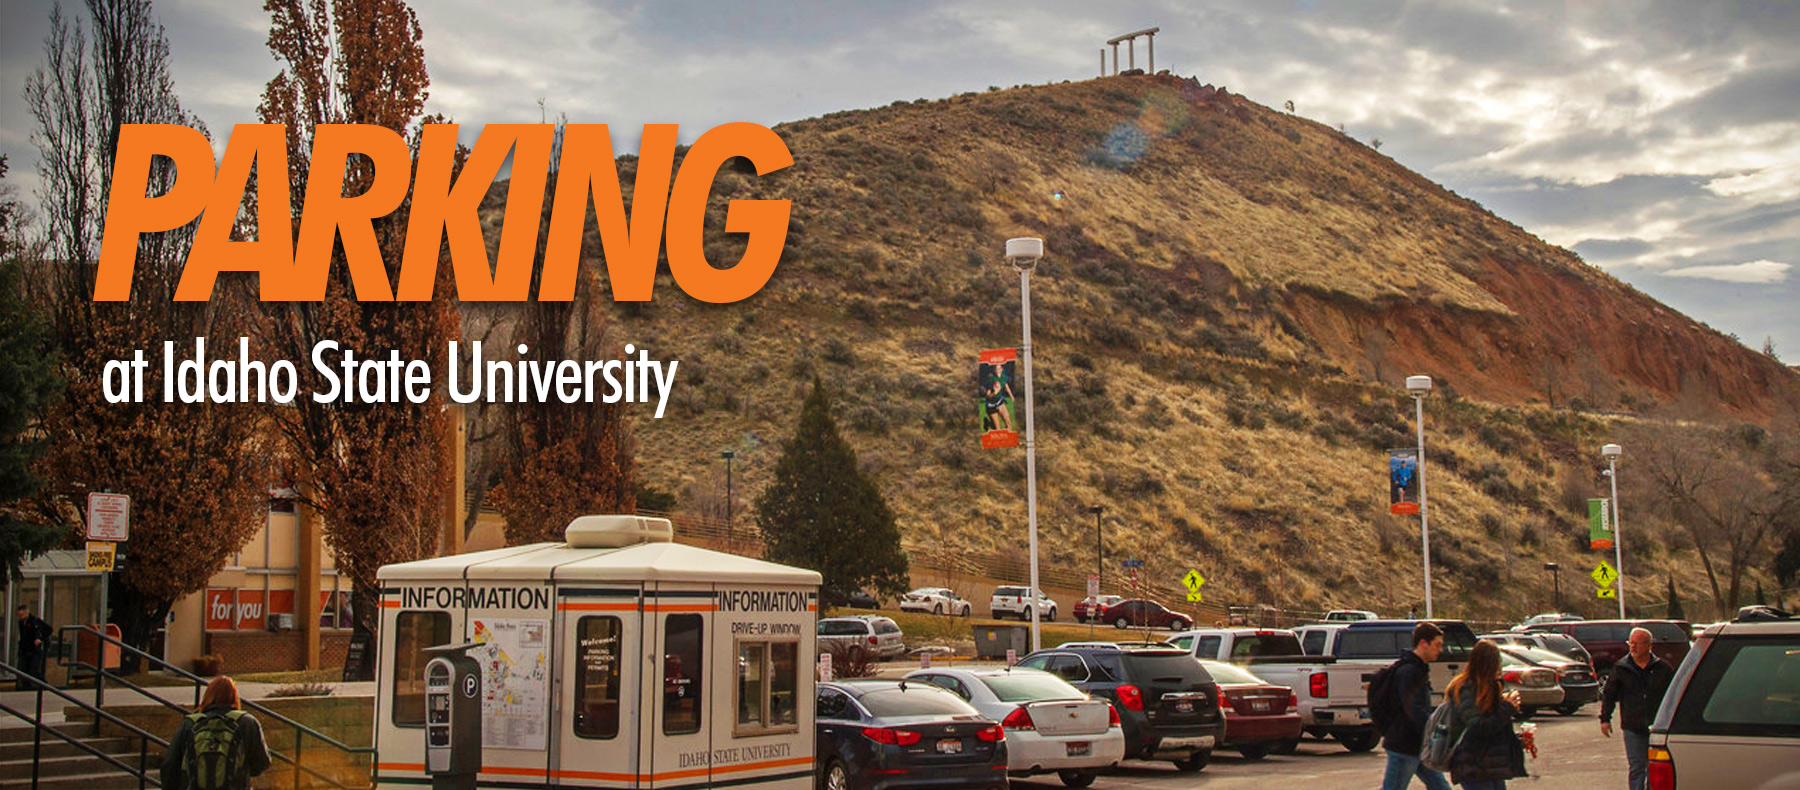 Parking at Idaho State University